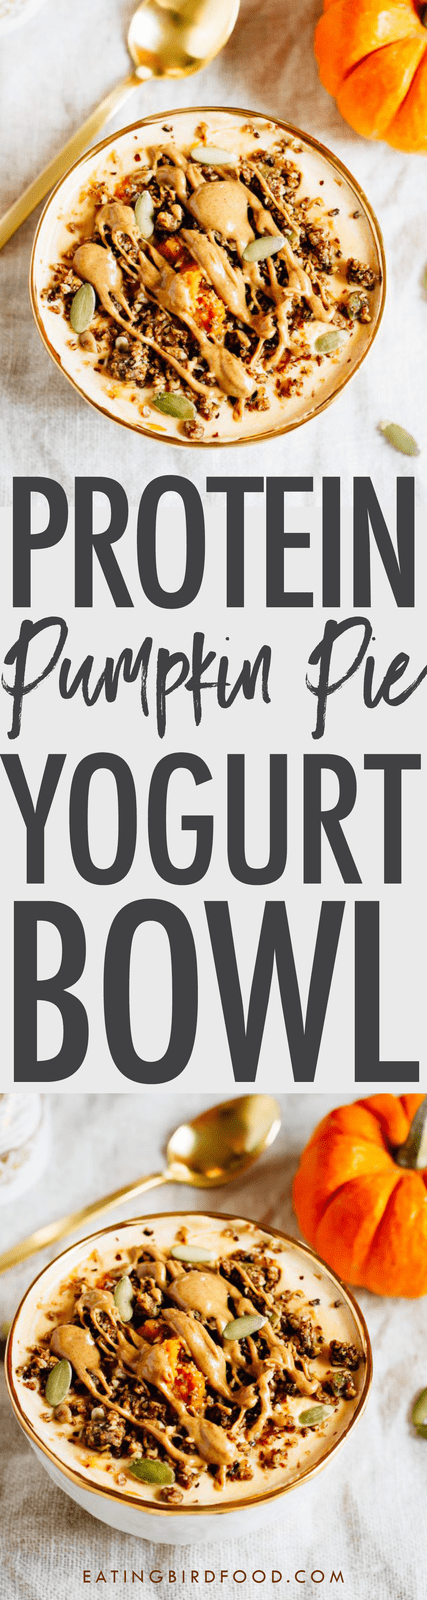 Pumpkin Pie Yogurt Bowl